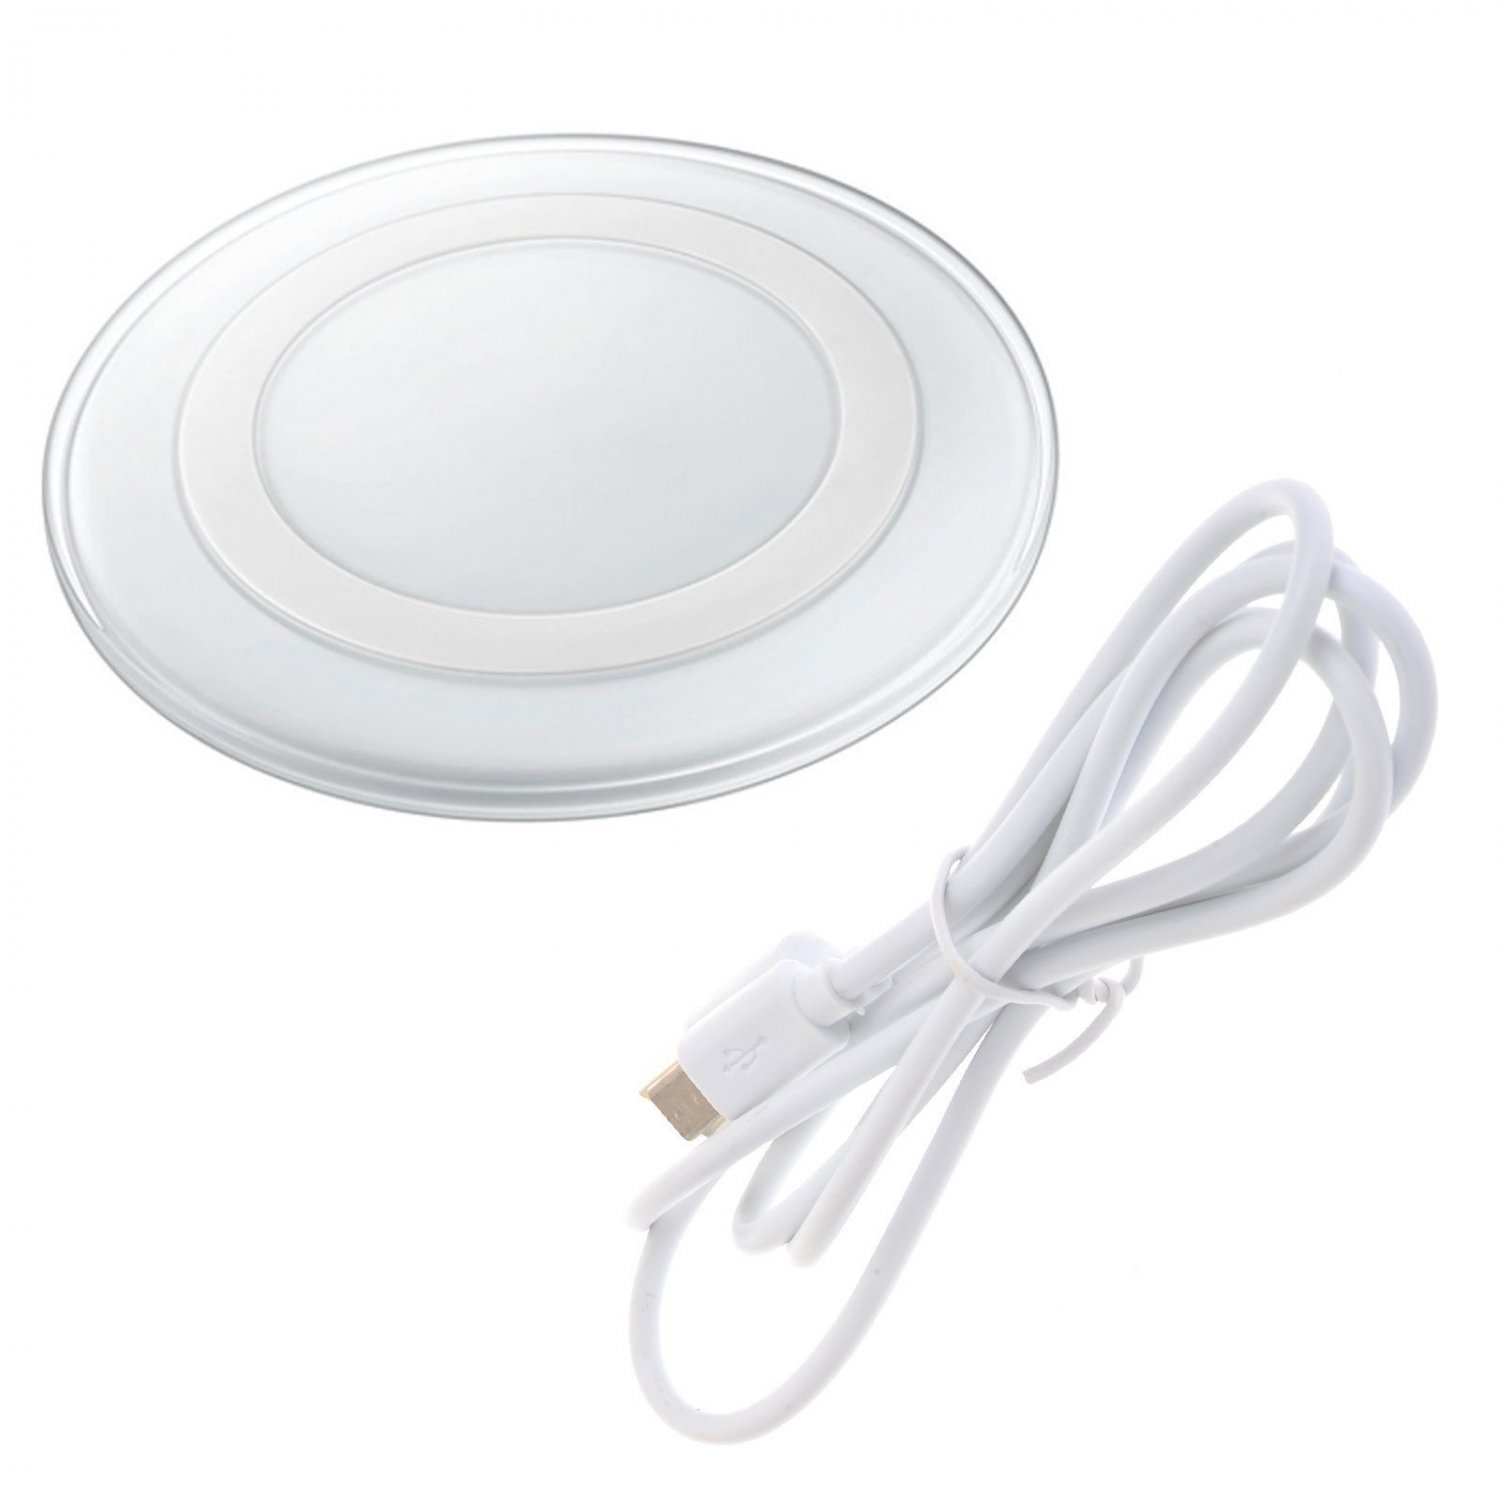 New White Wireless Charging Charger Charge Pad for Samsung Galaxy S6 Edge